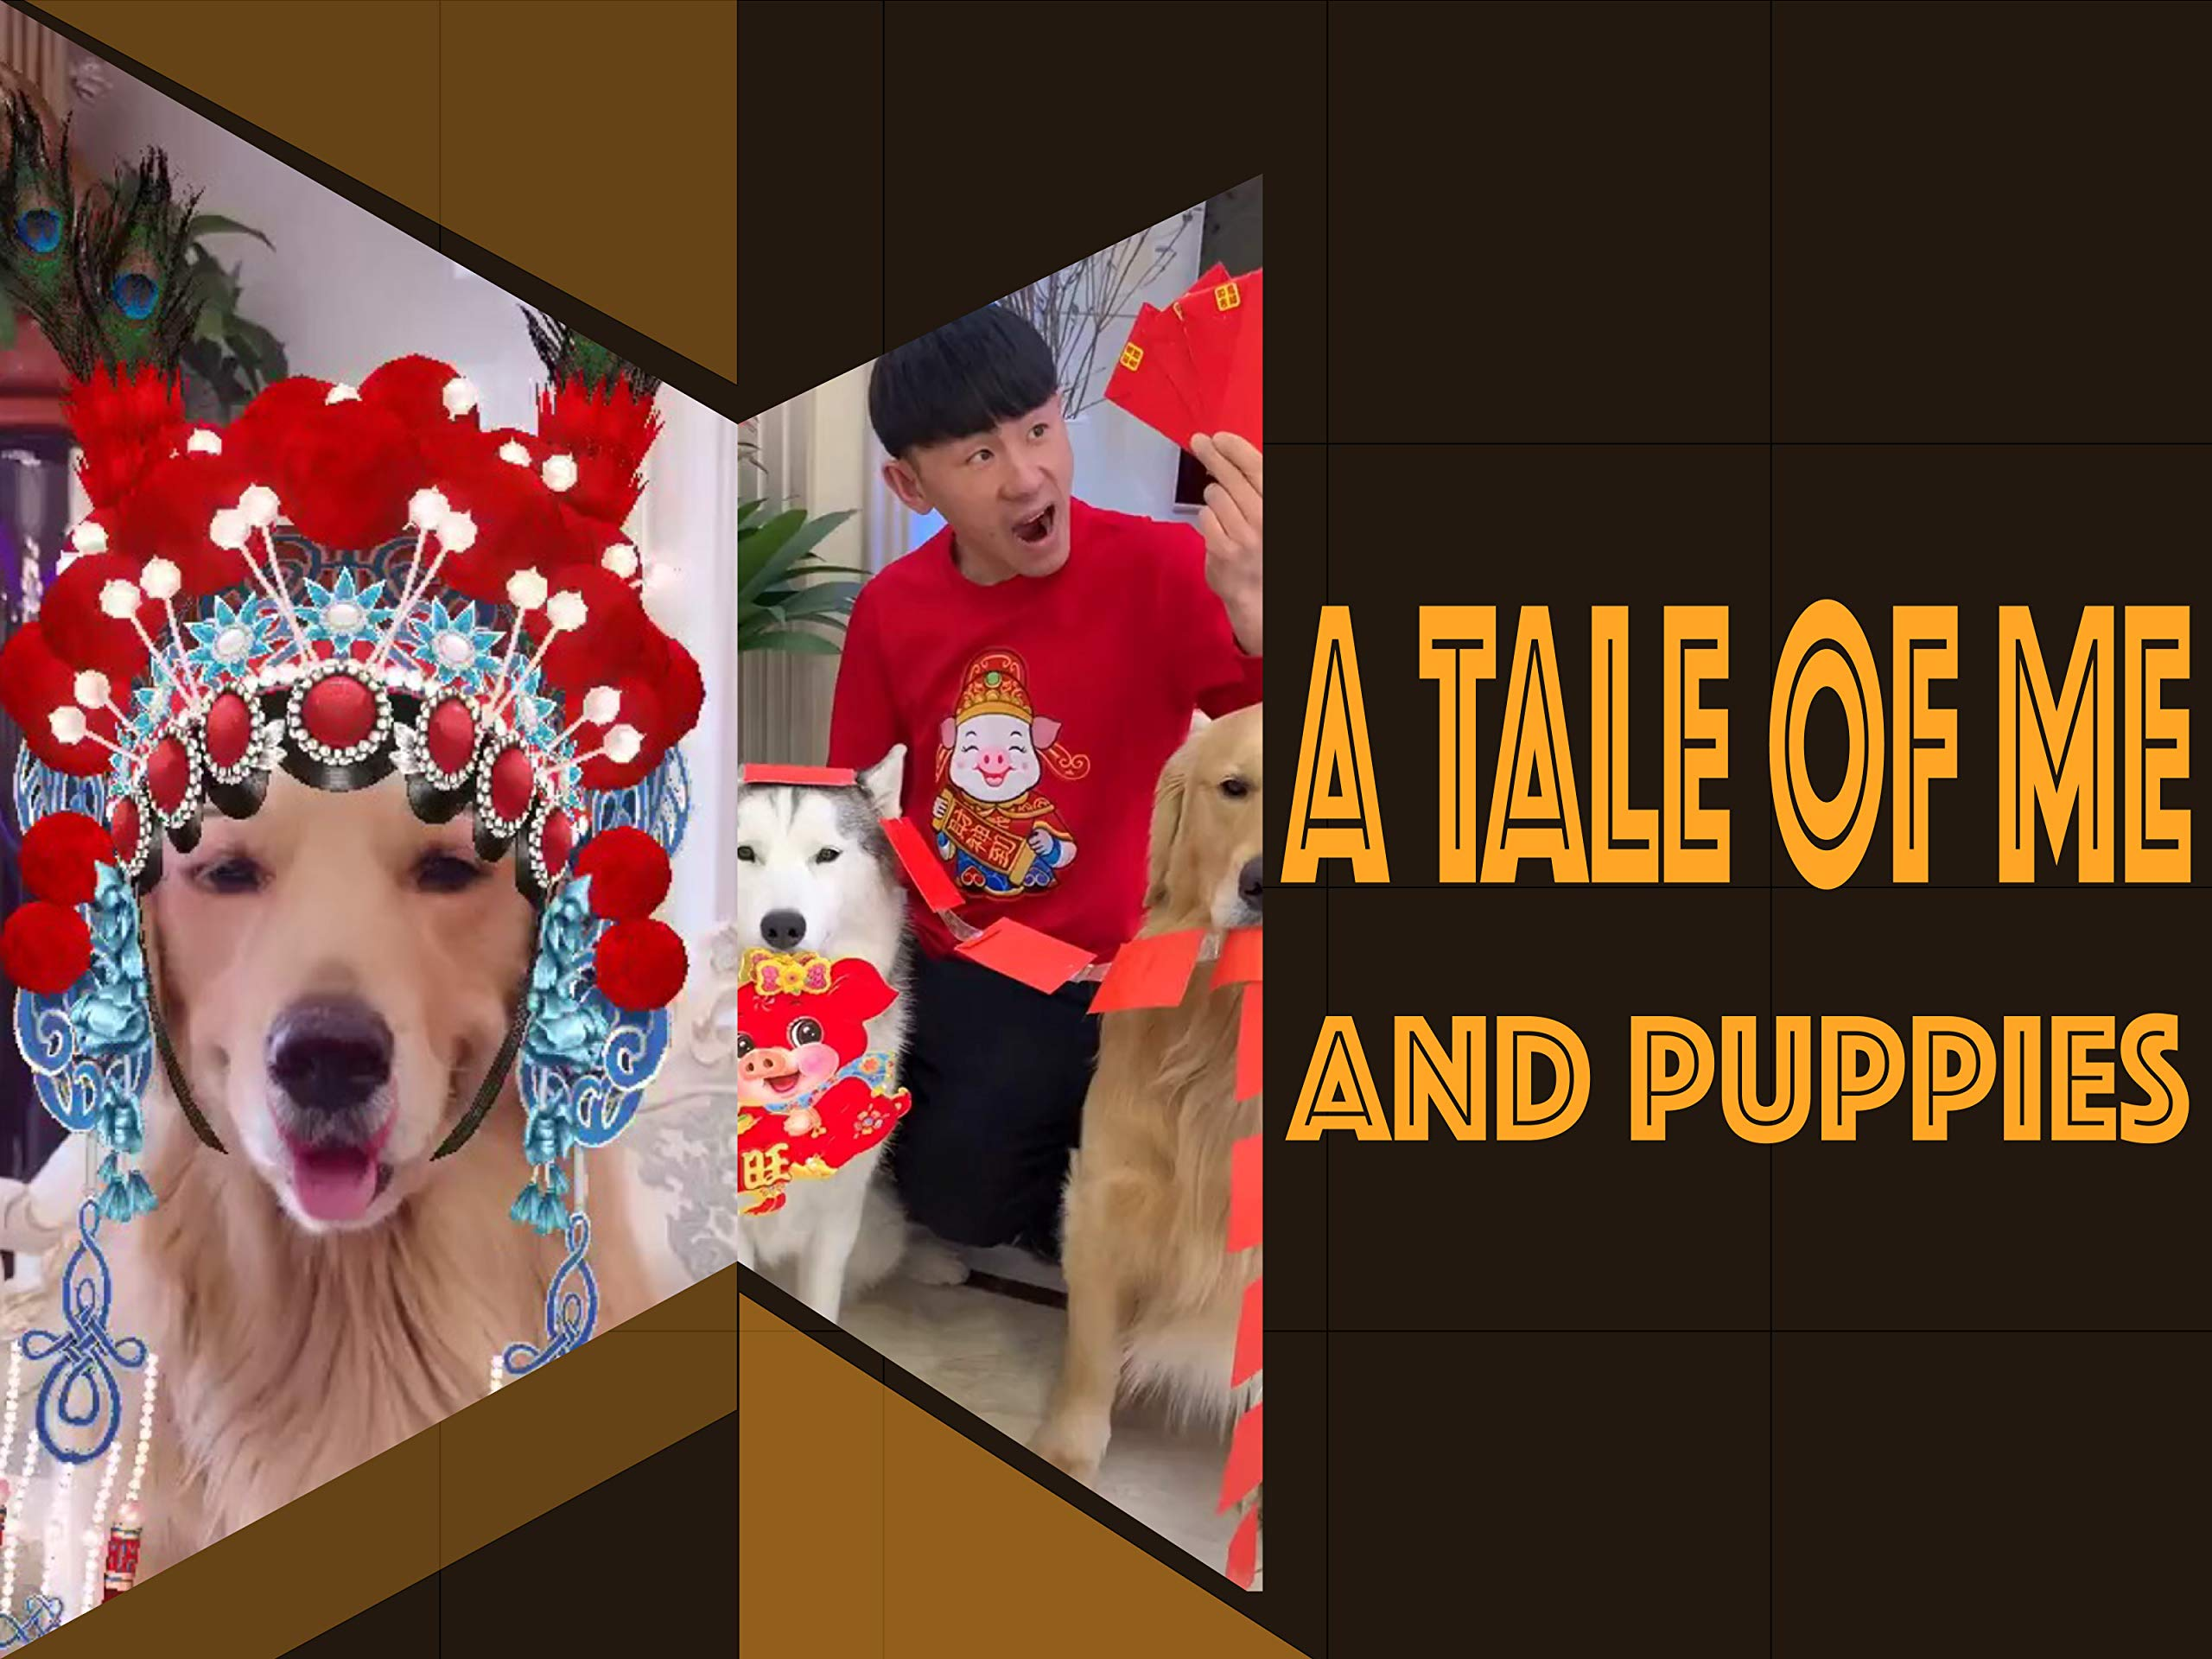 A tale of me and puppies - Season 1